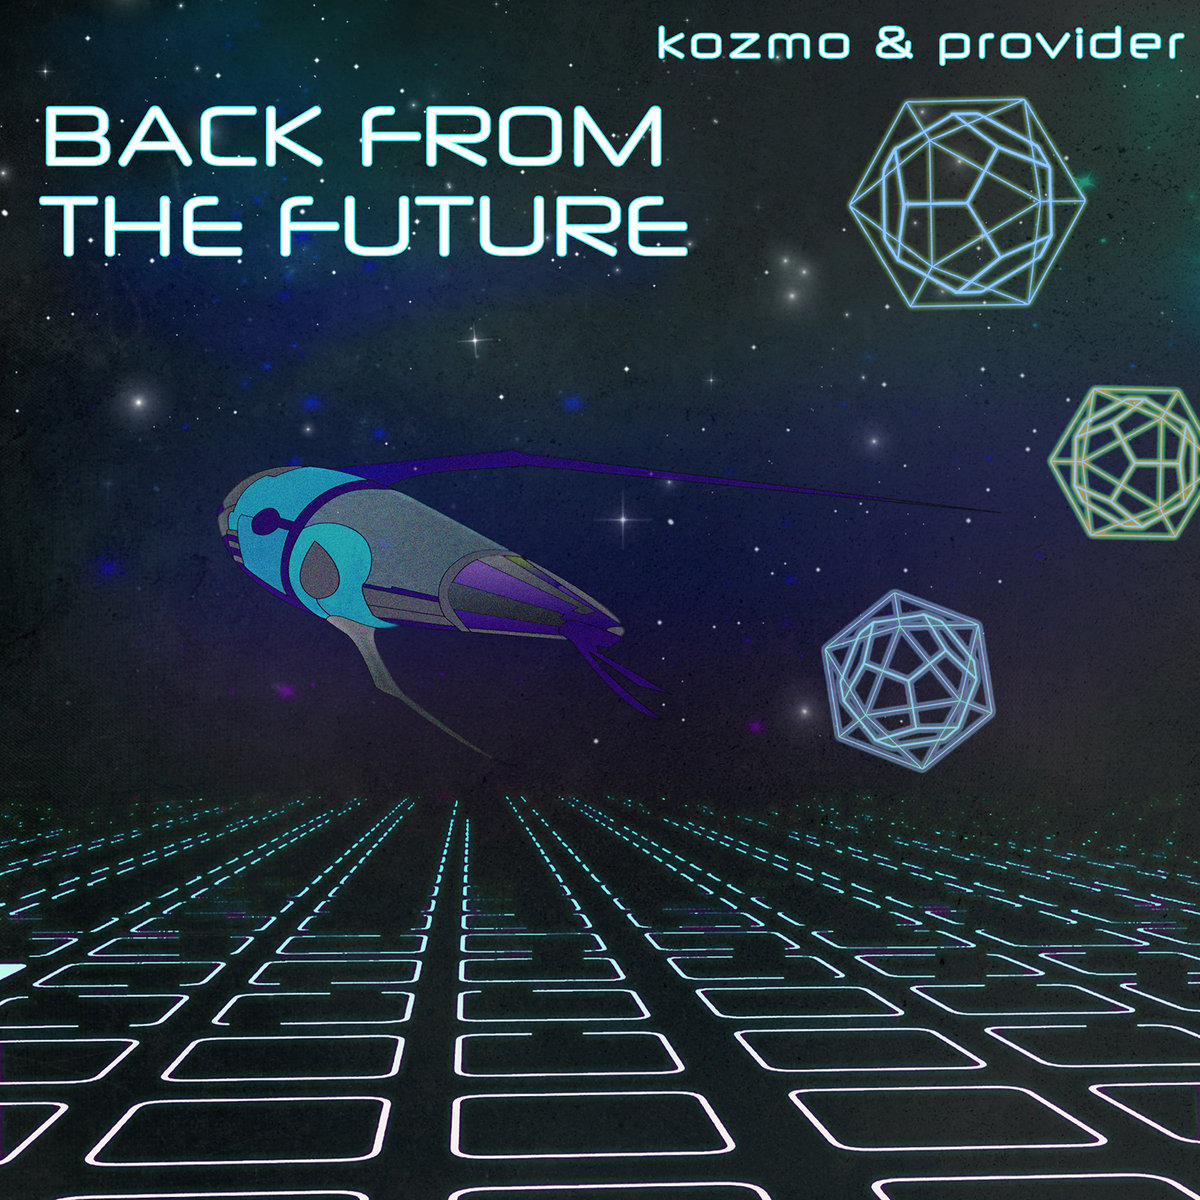 KOZMO & Provider - Back From the Future